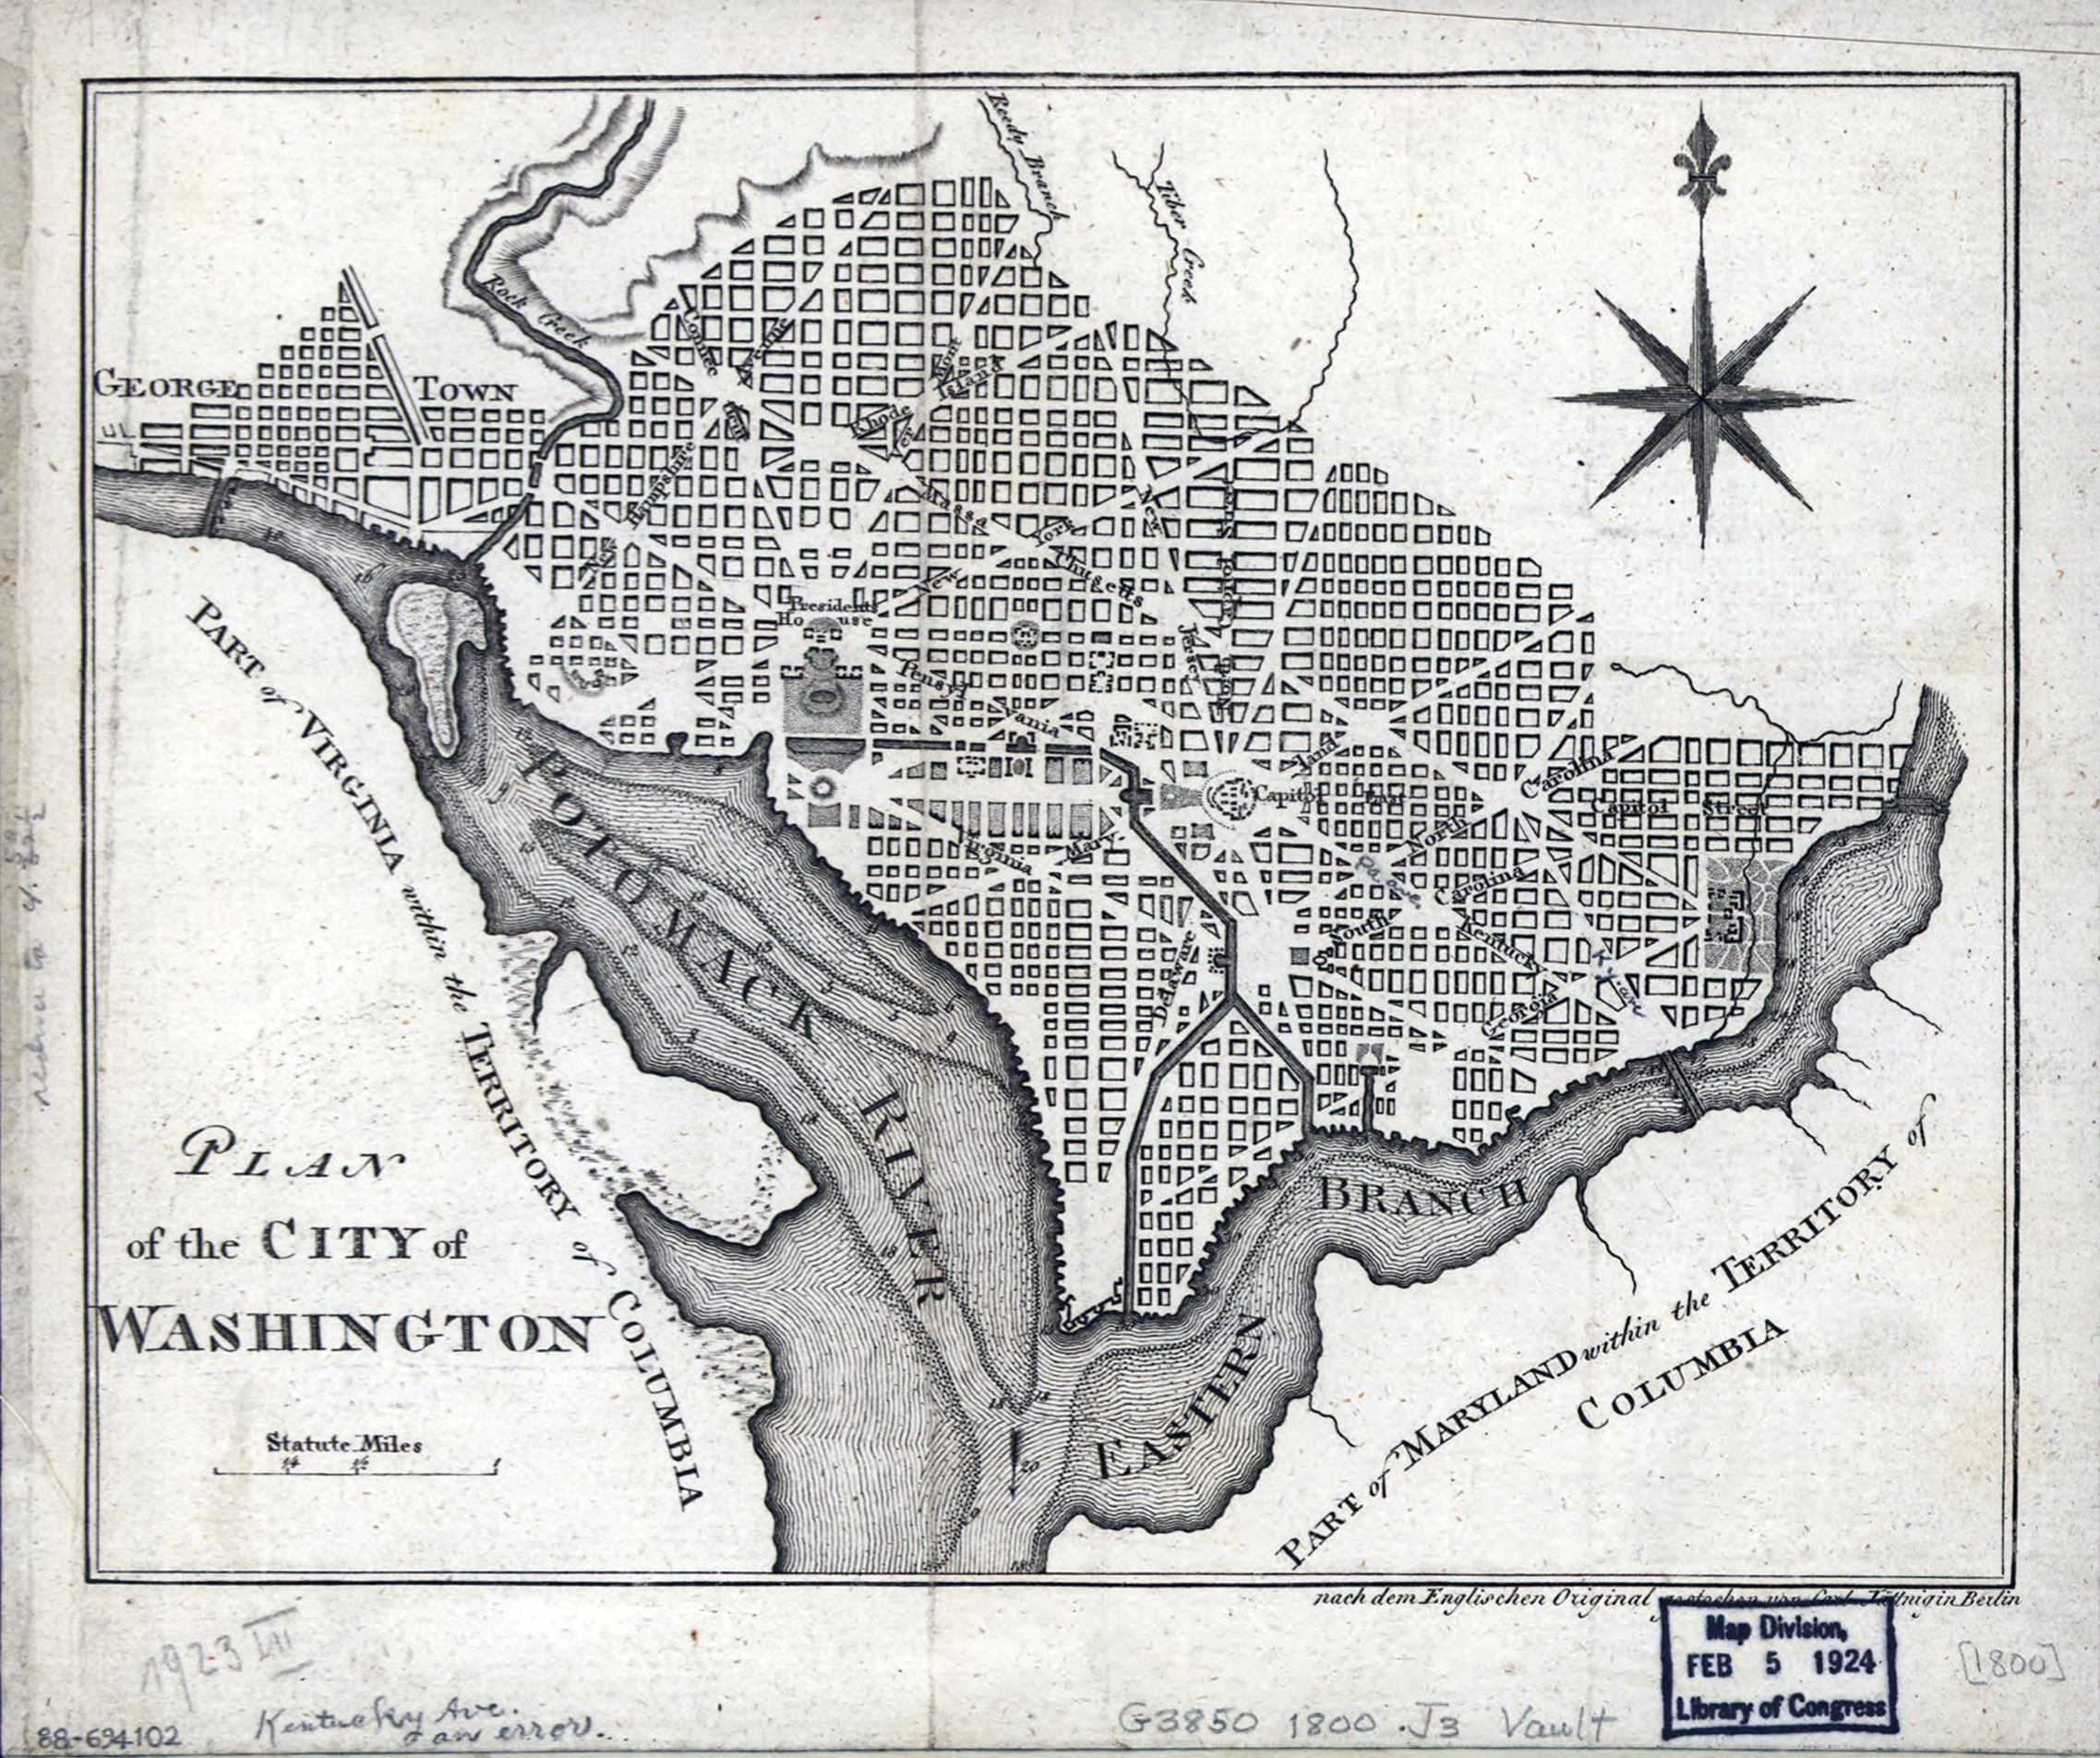 Plan of the City of Washington, 1800 revision